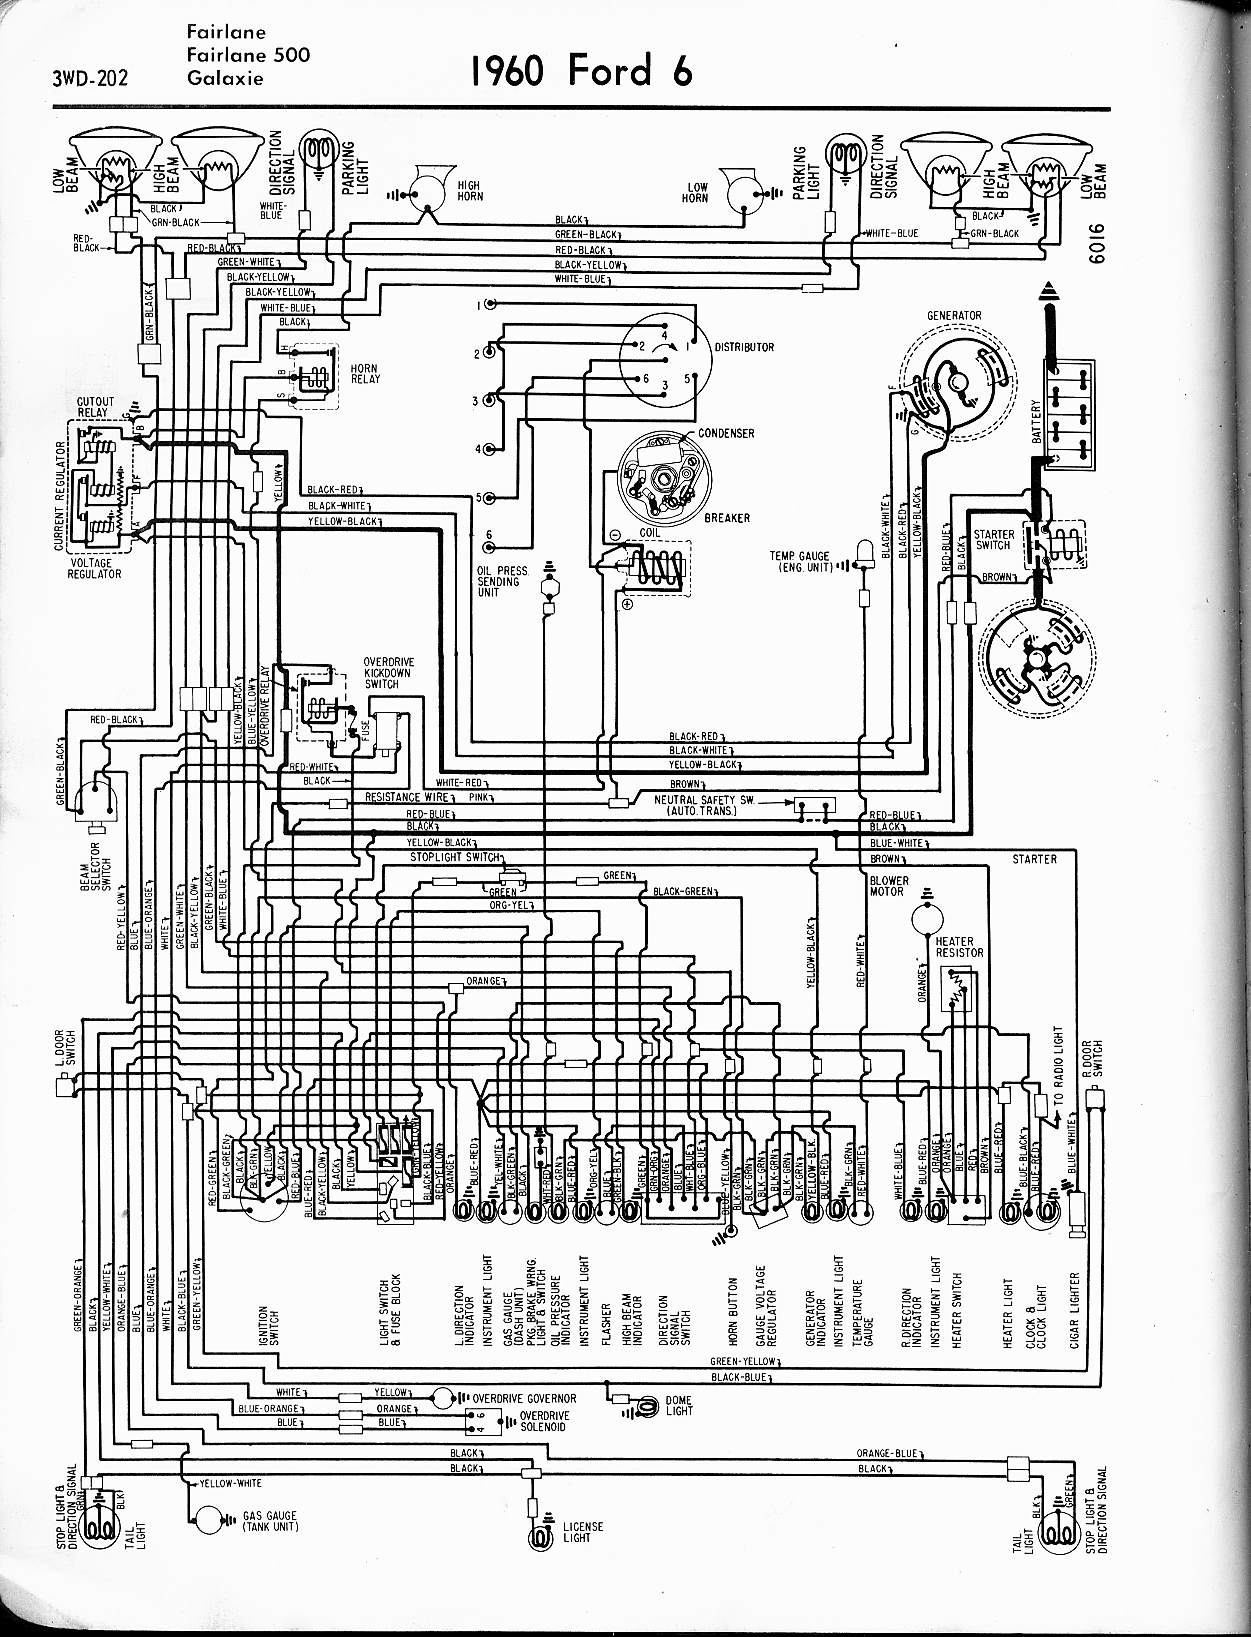 MWire5765 202 wiring diagram for 1959 ford f100 readingrat net 1959 ford f100 wiring diagram at bayanpartner.co